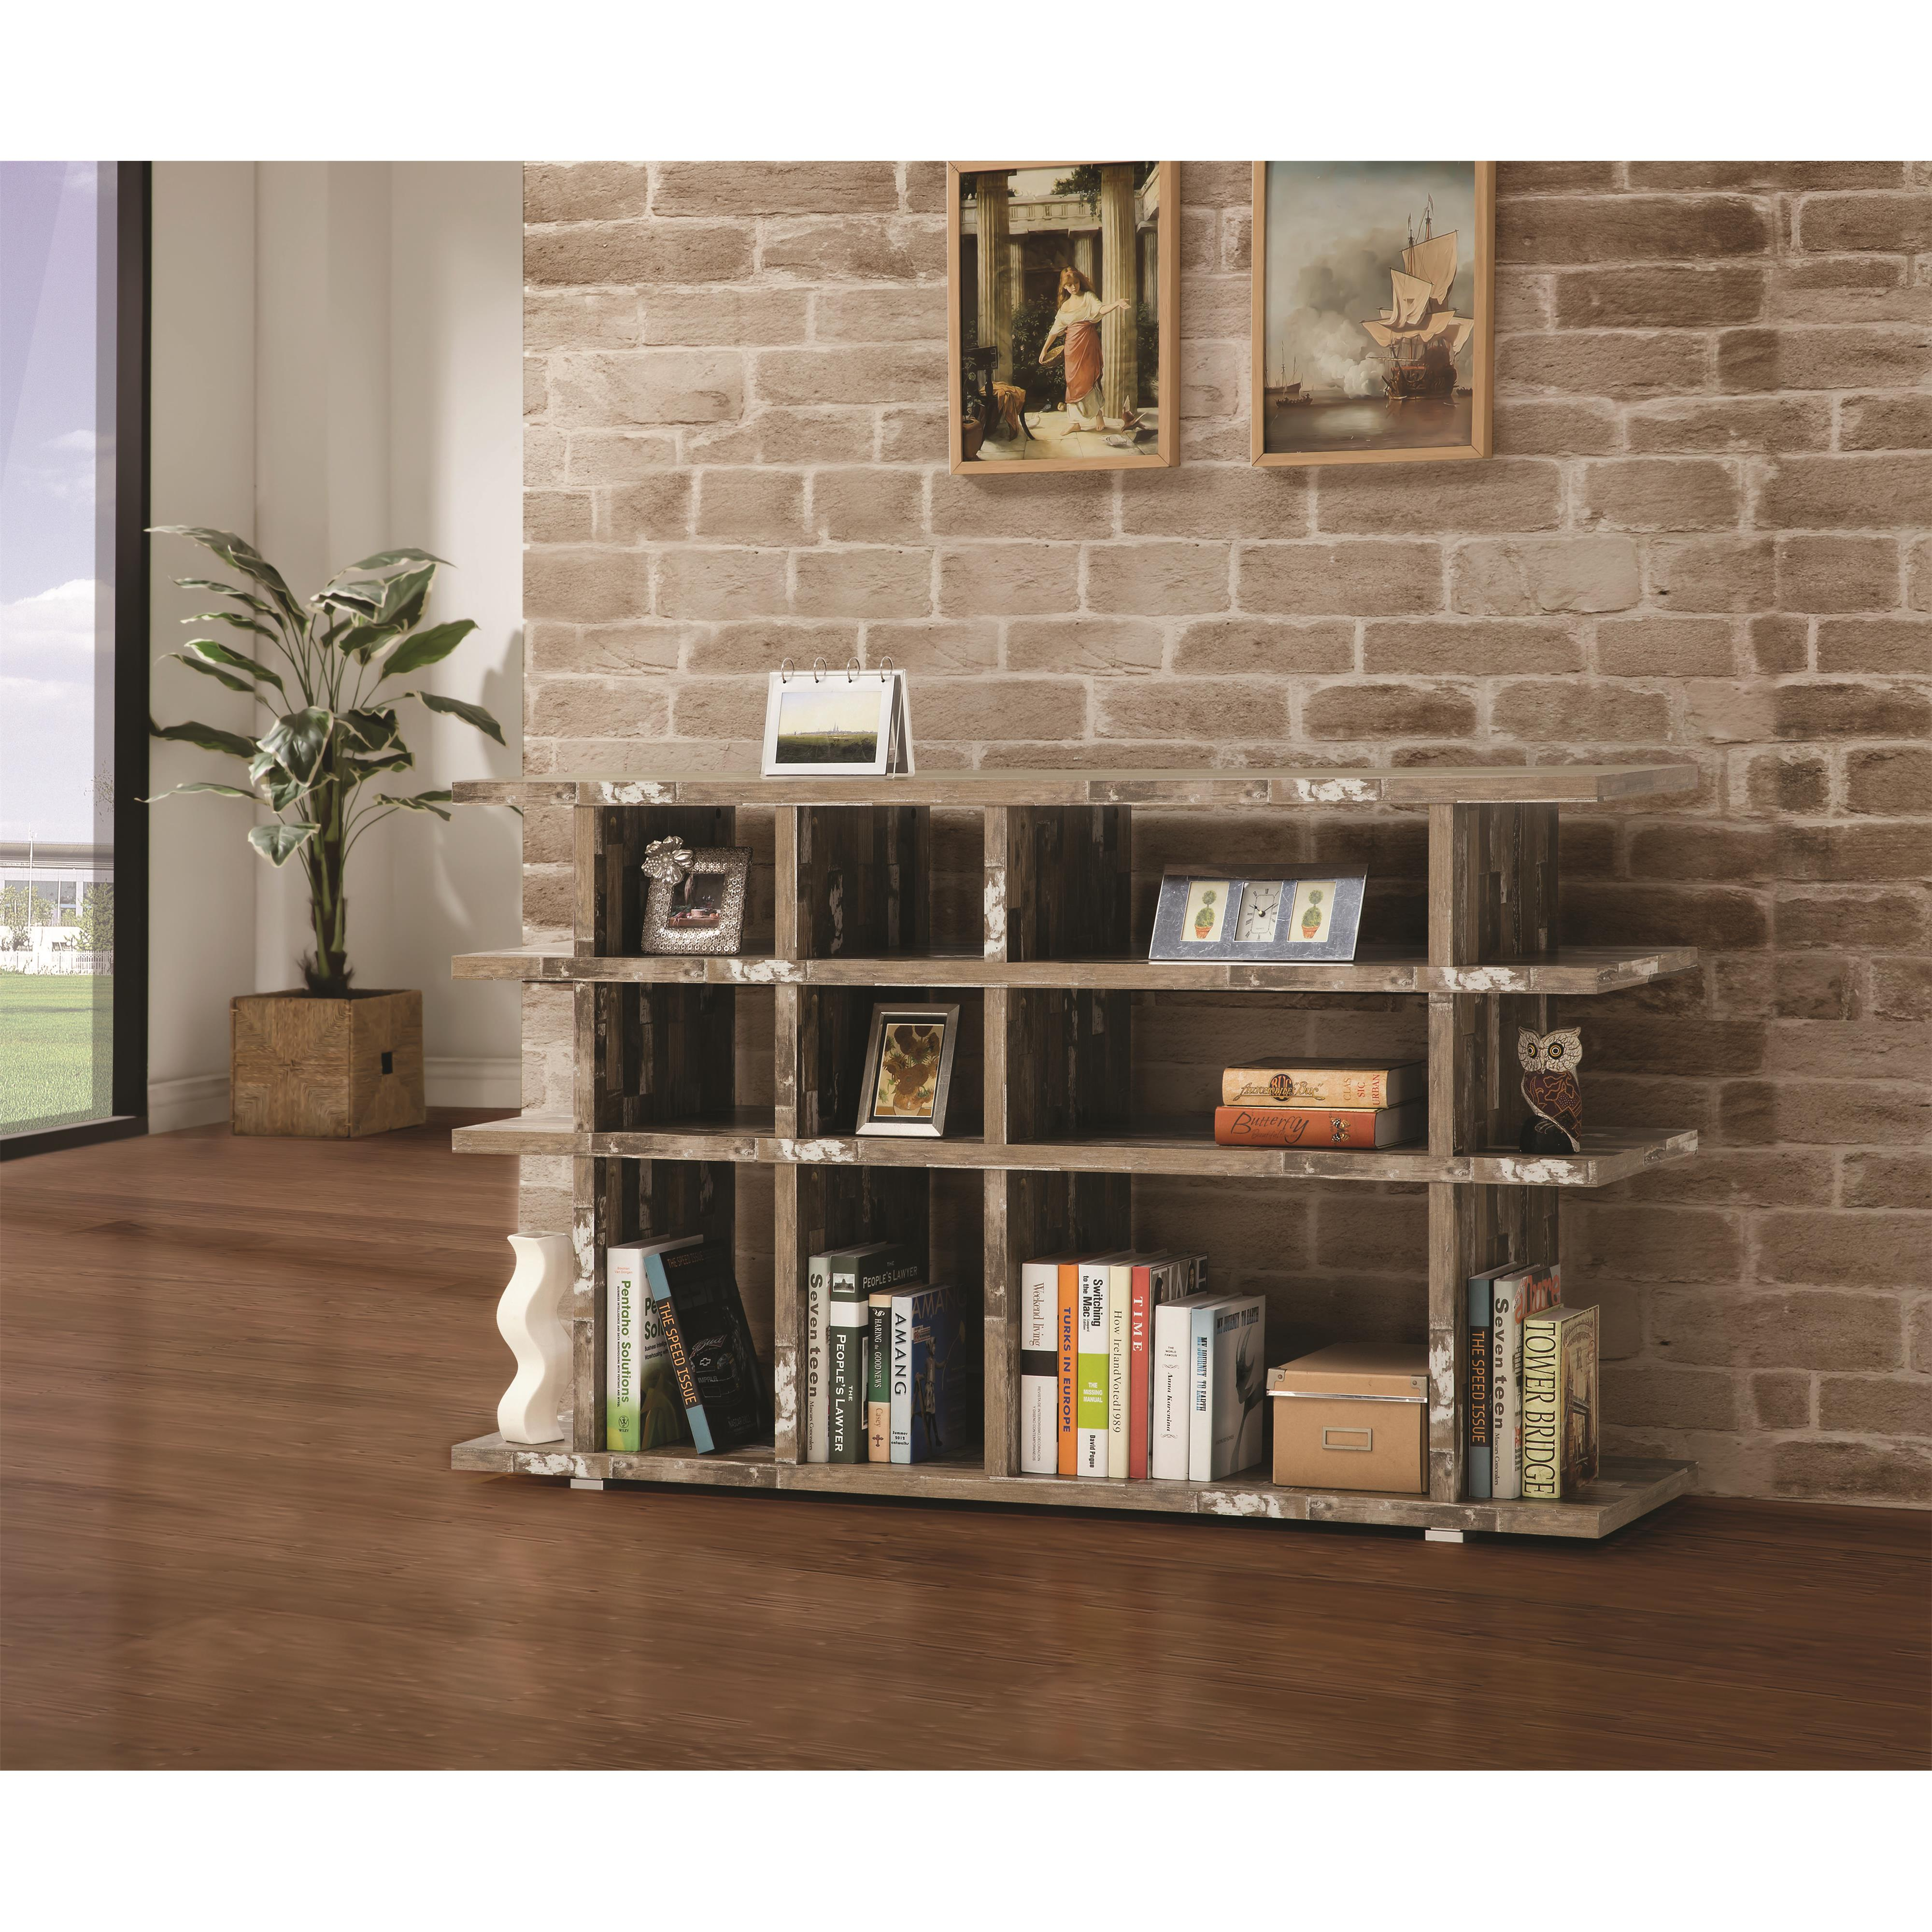 Coaster Bookcases Bookcase - Item Number: 800848